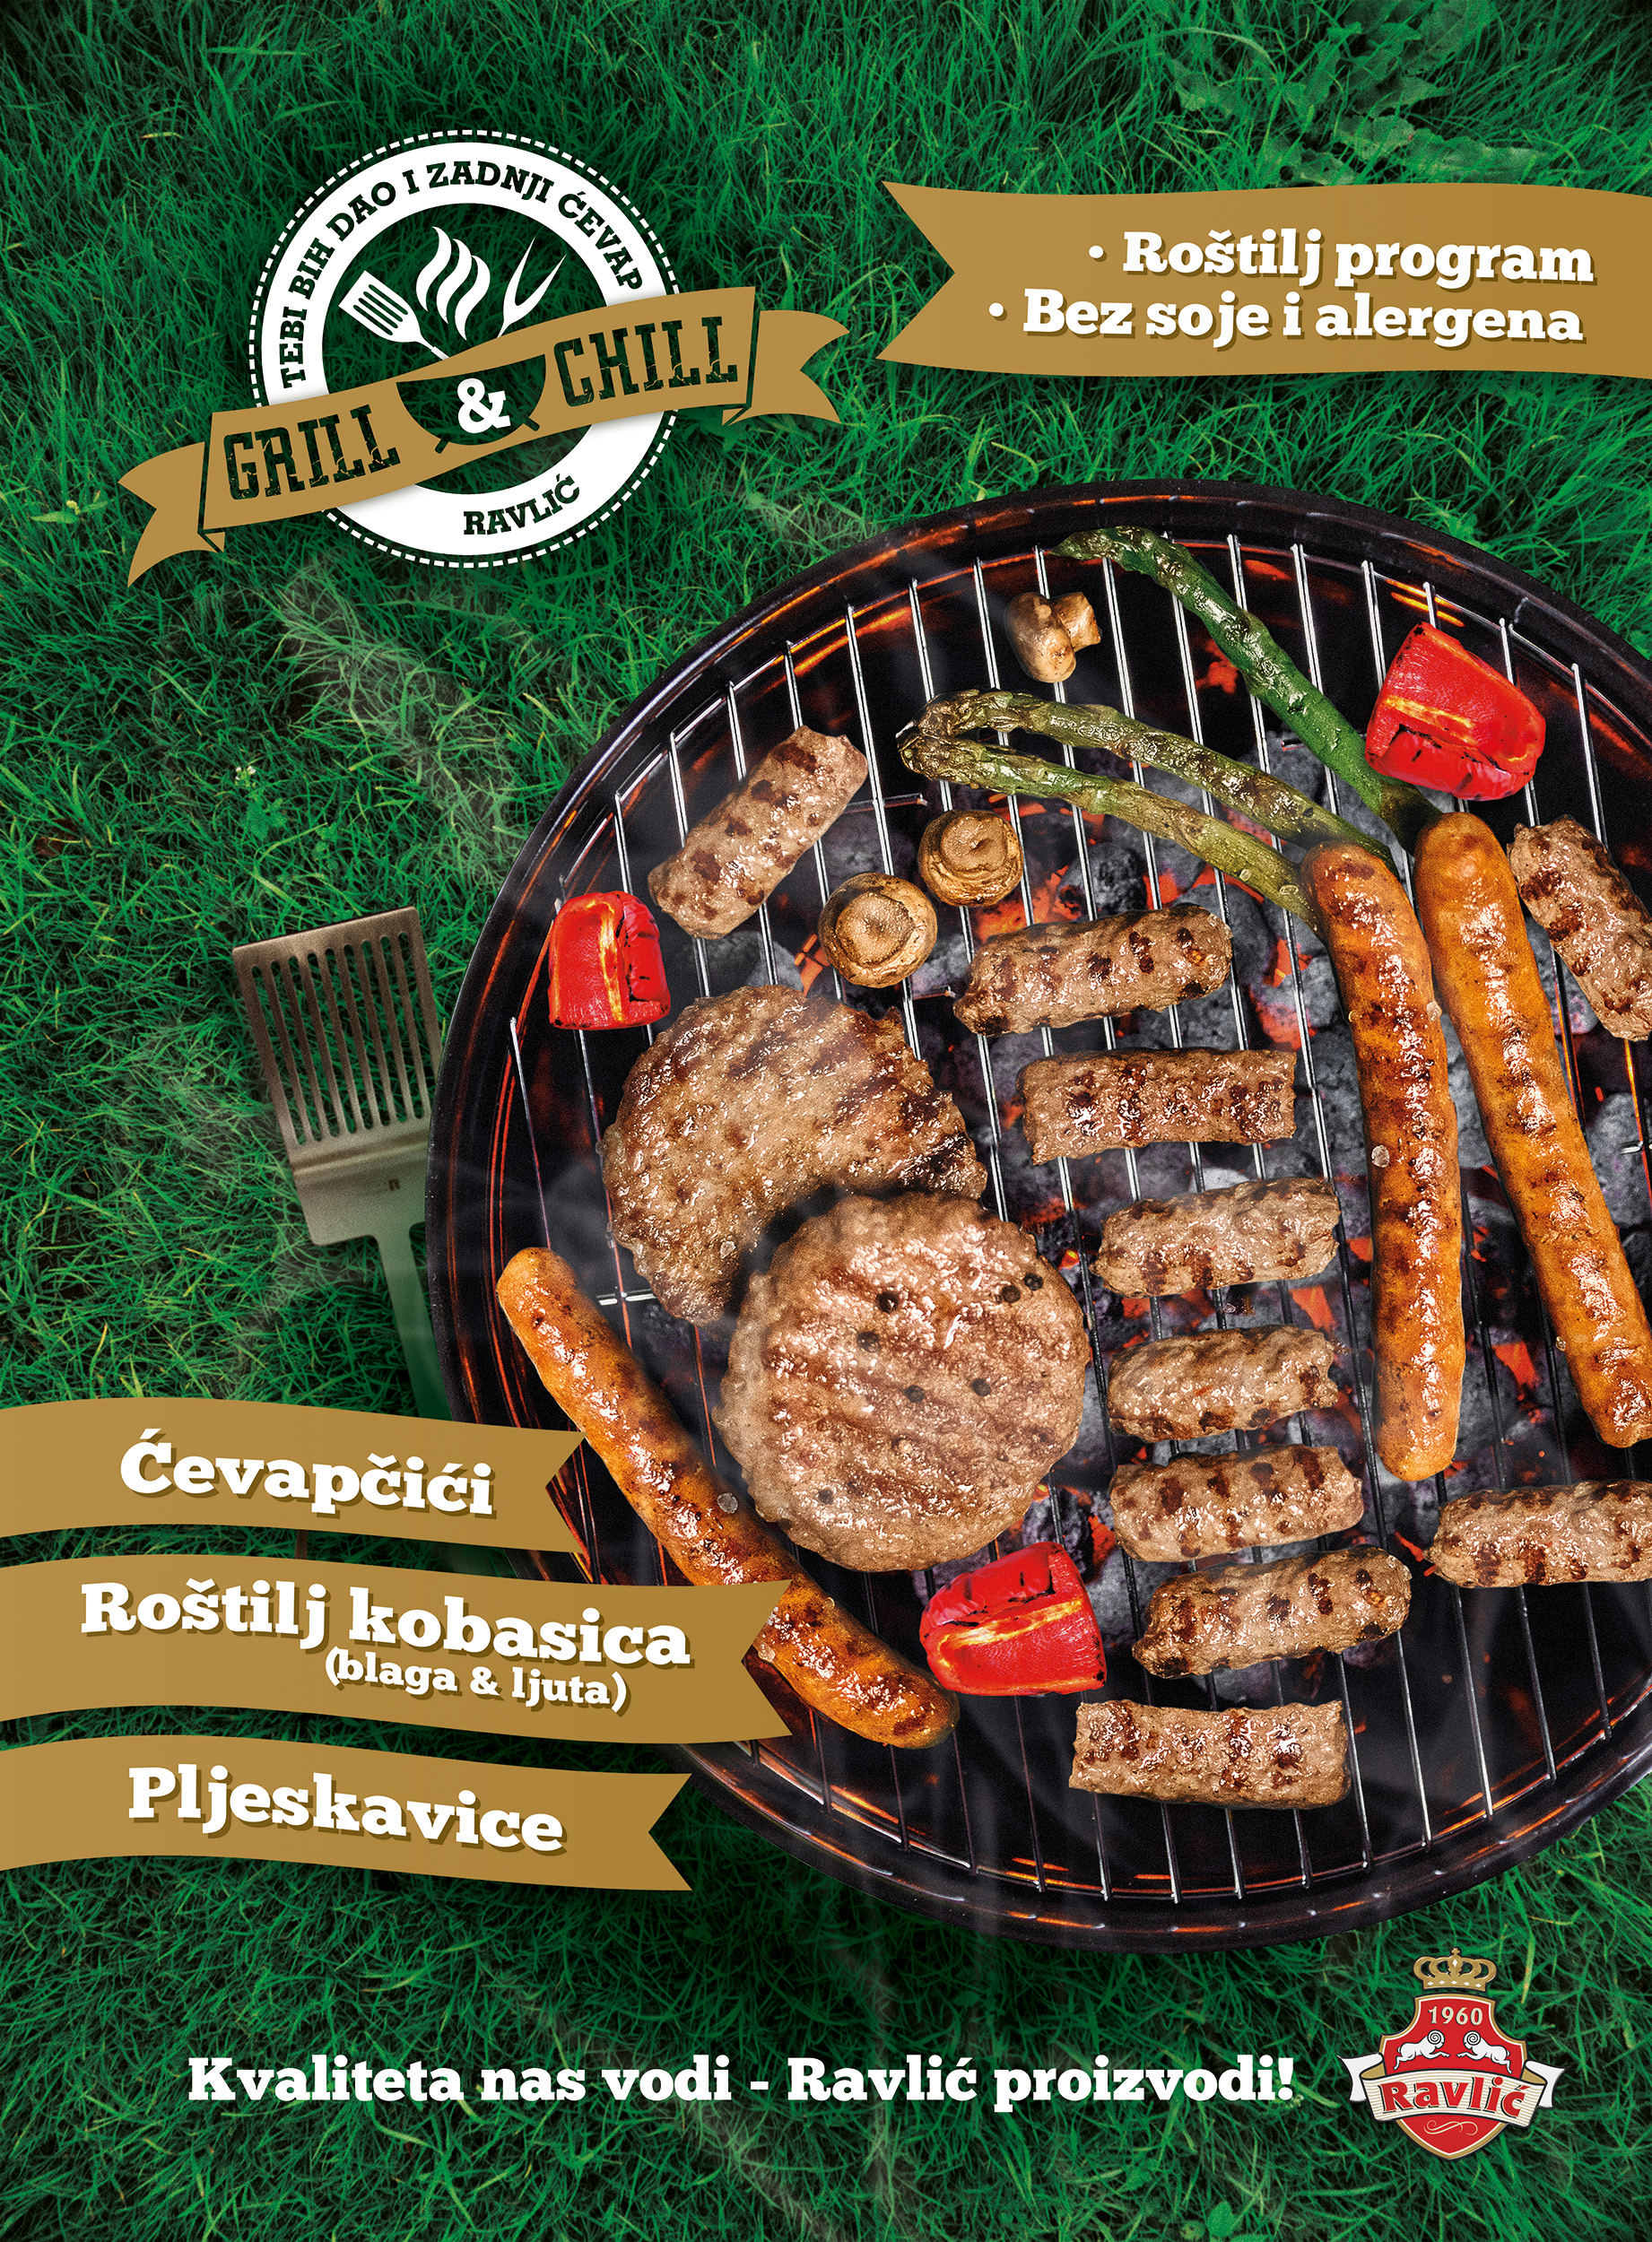 Grill_chill plakat 2018 small